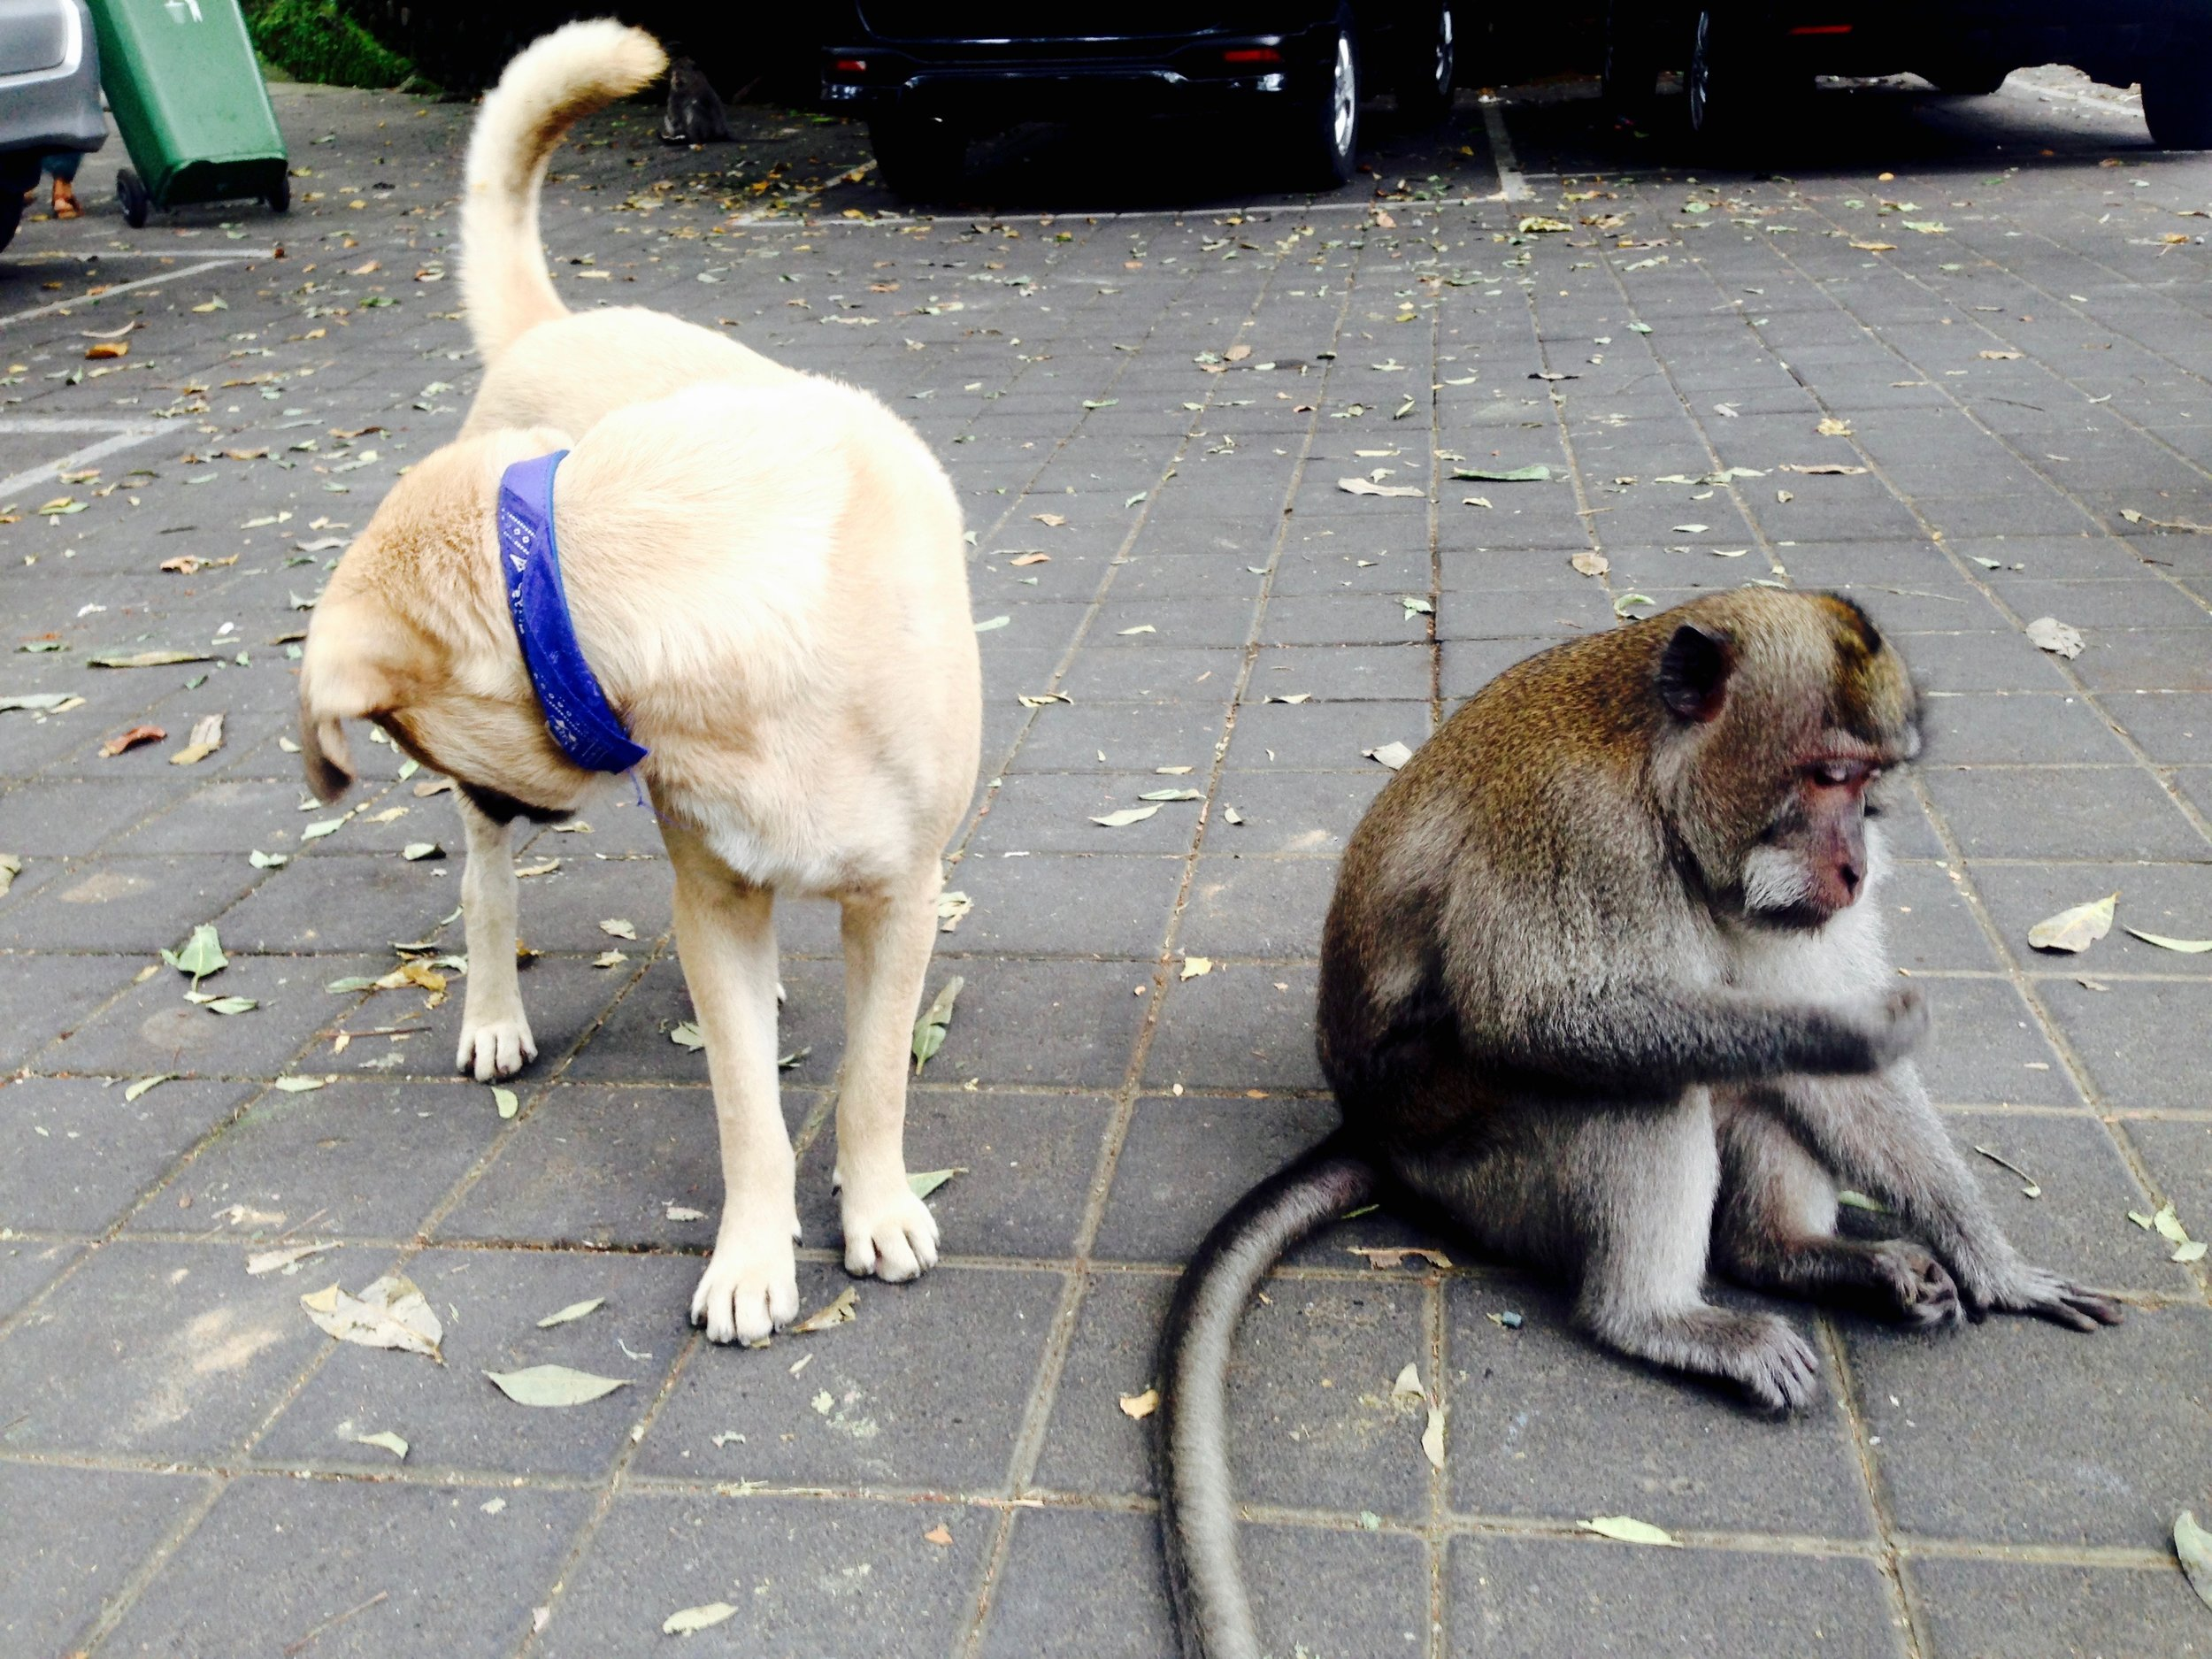 Walking past the Monkey Sanctuary and spotted a friendship forming...